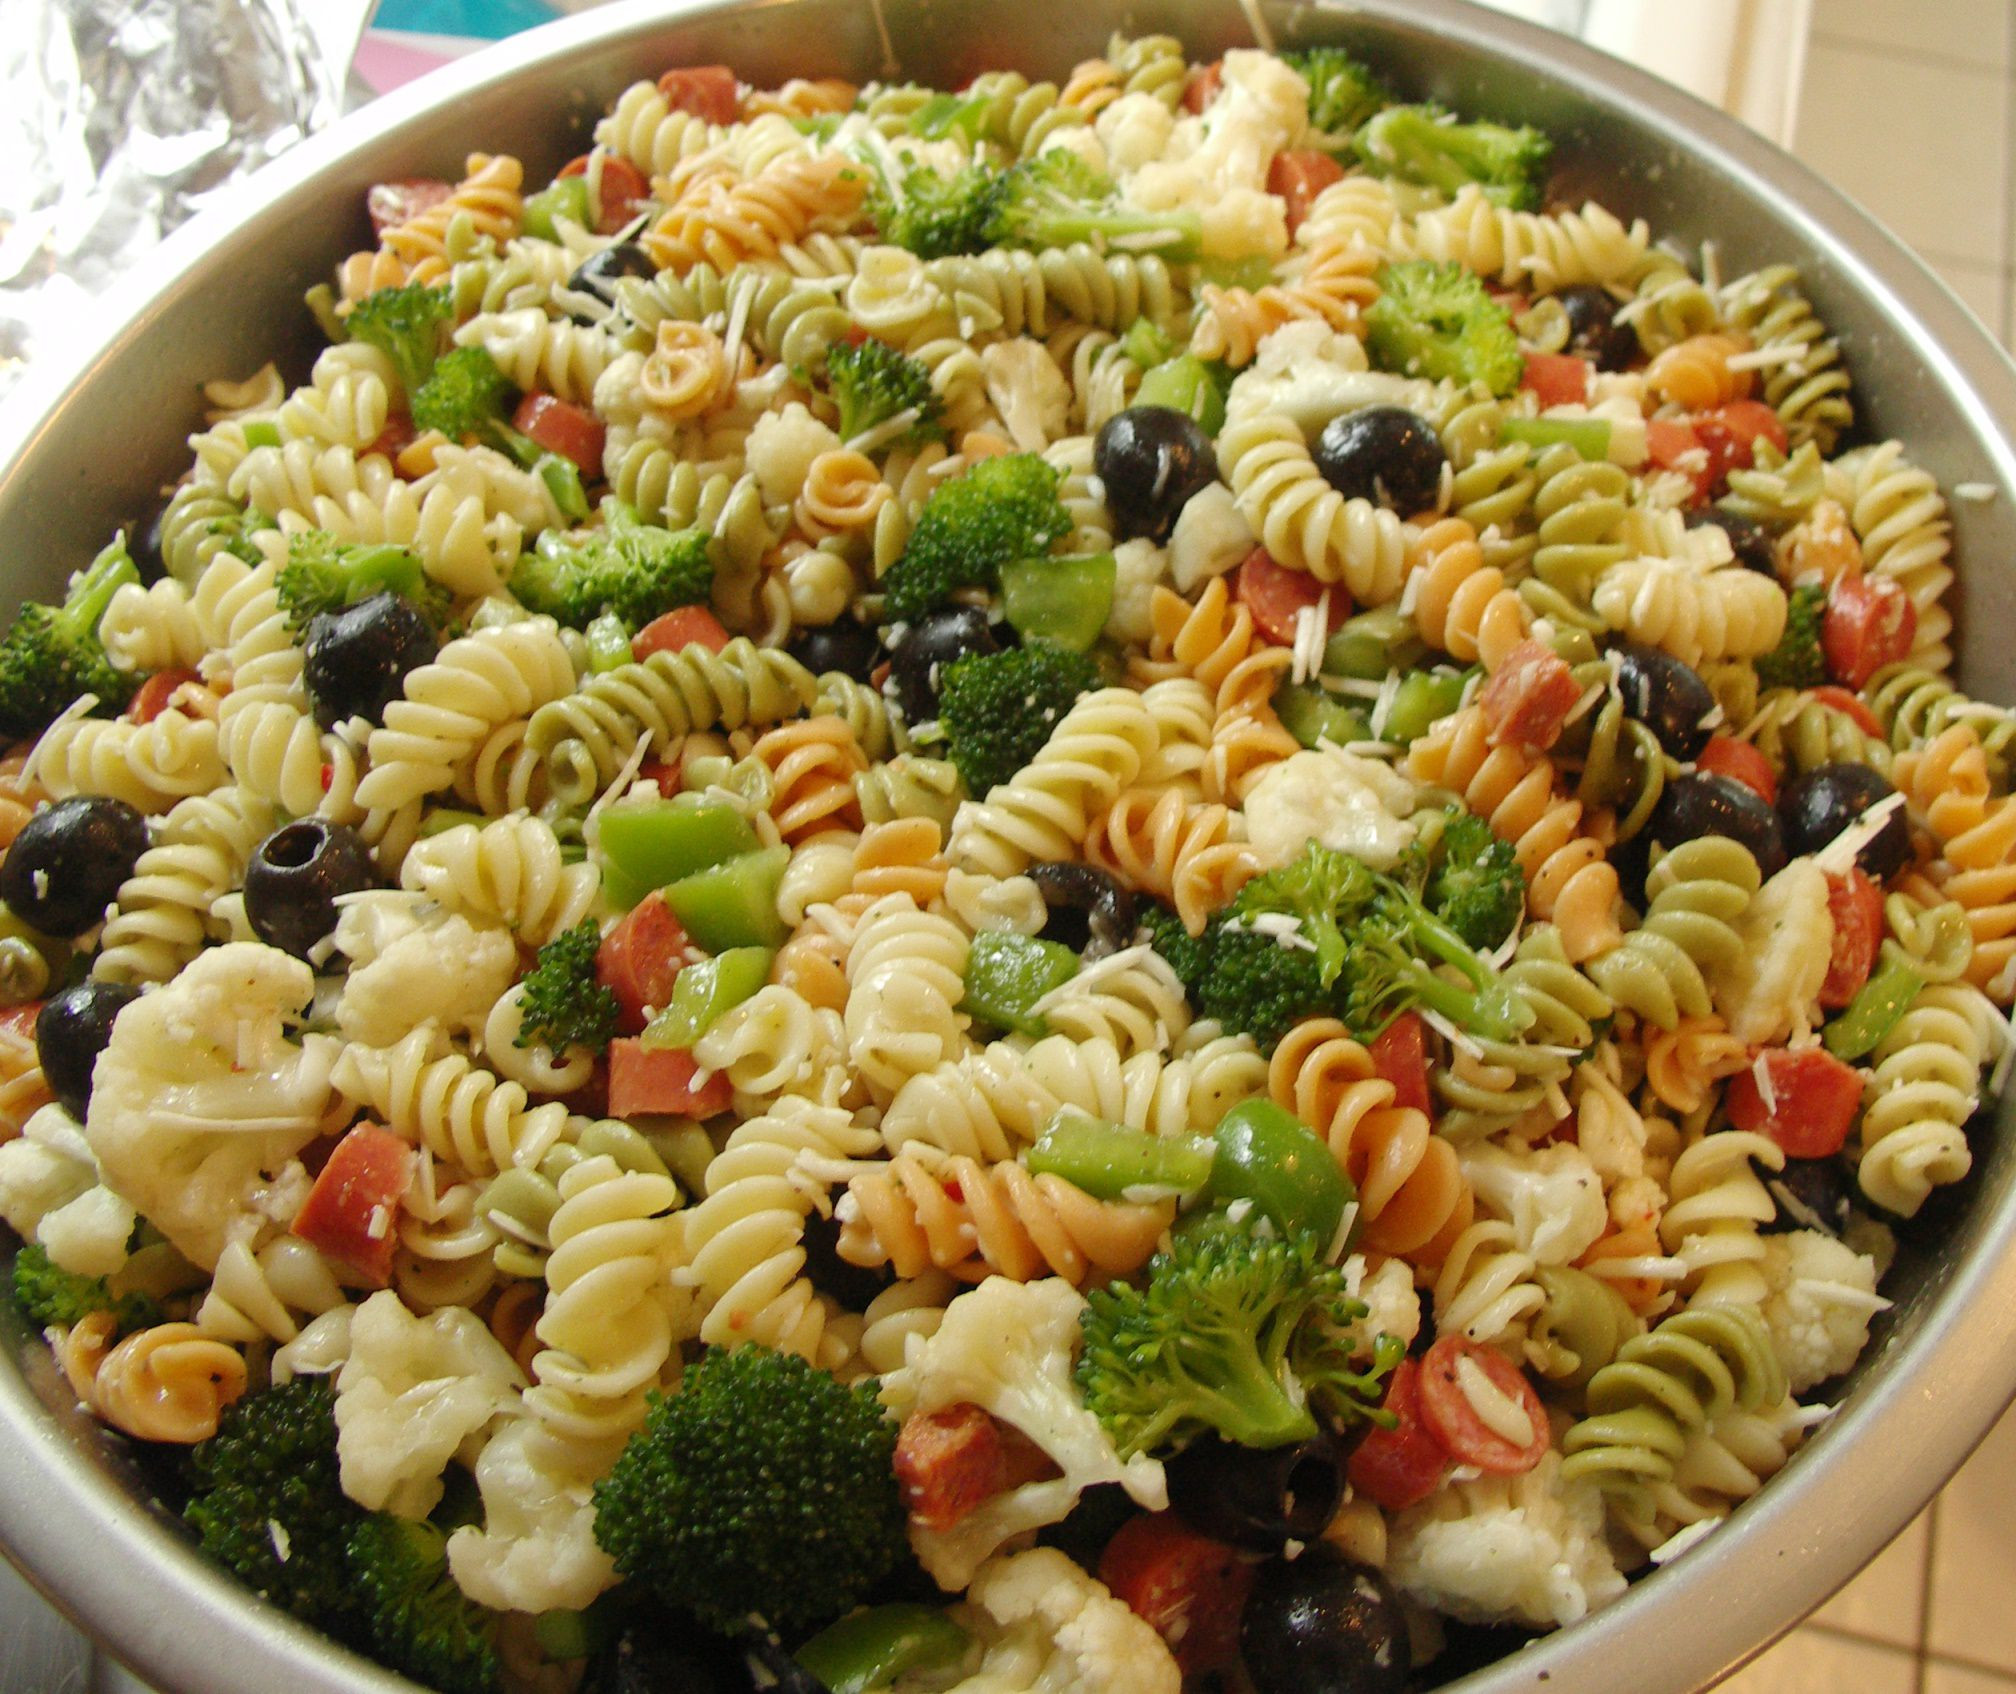 Vegan Pasta Salad Recipes  Fat Free Vegan Pasta Salad Recipe